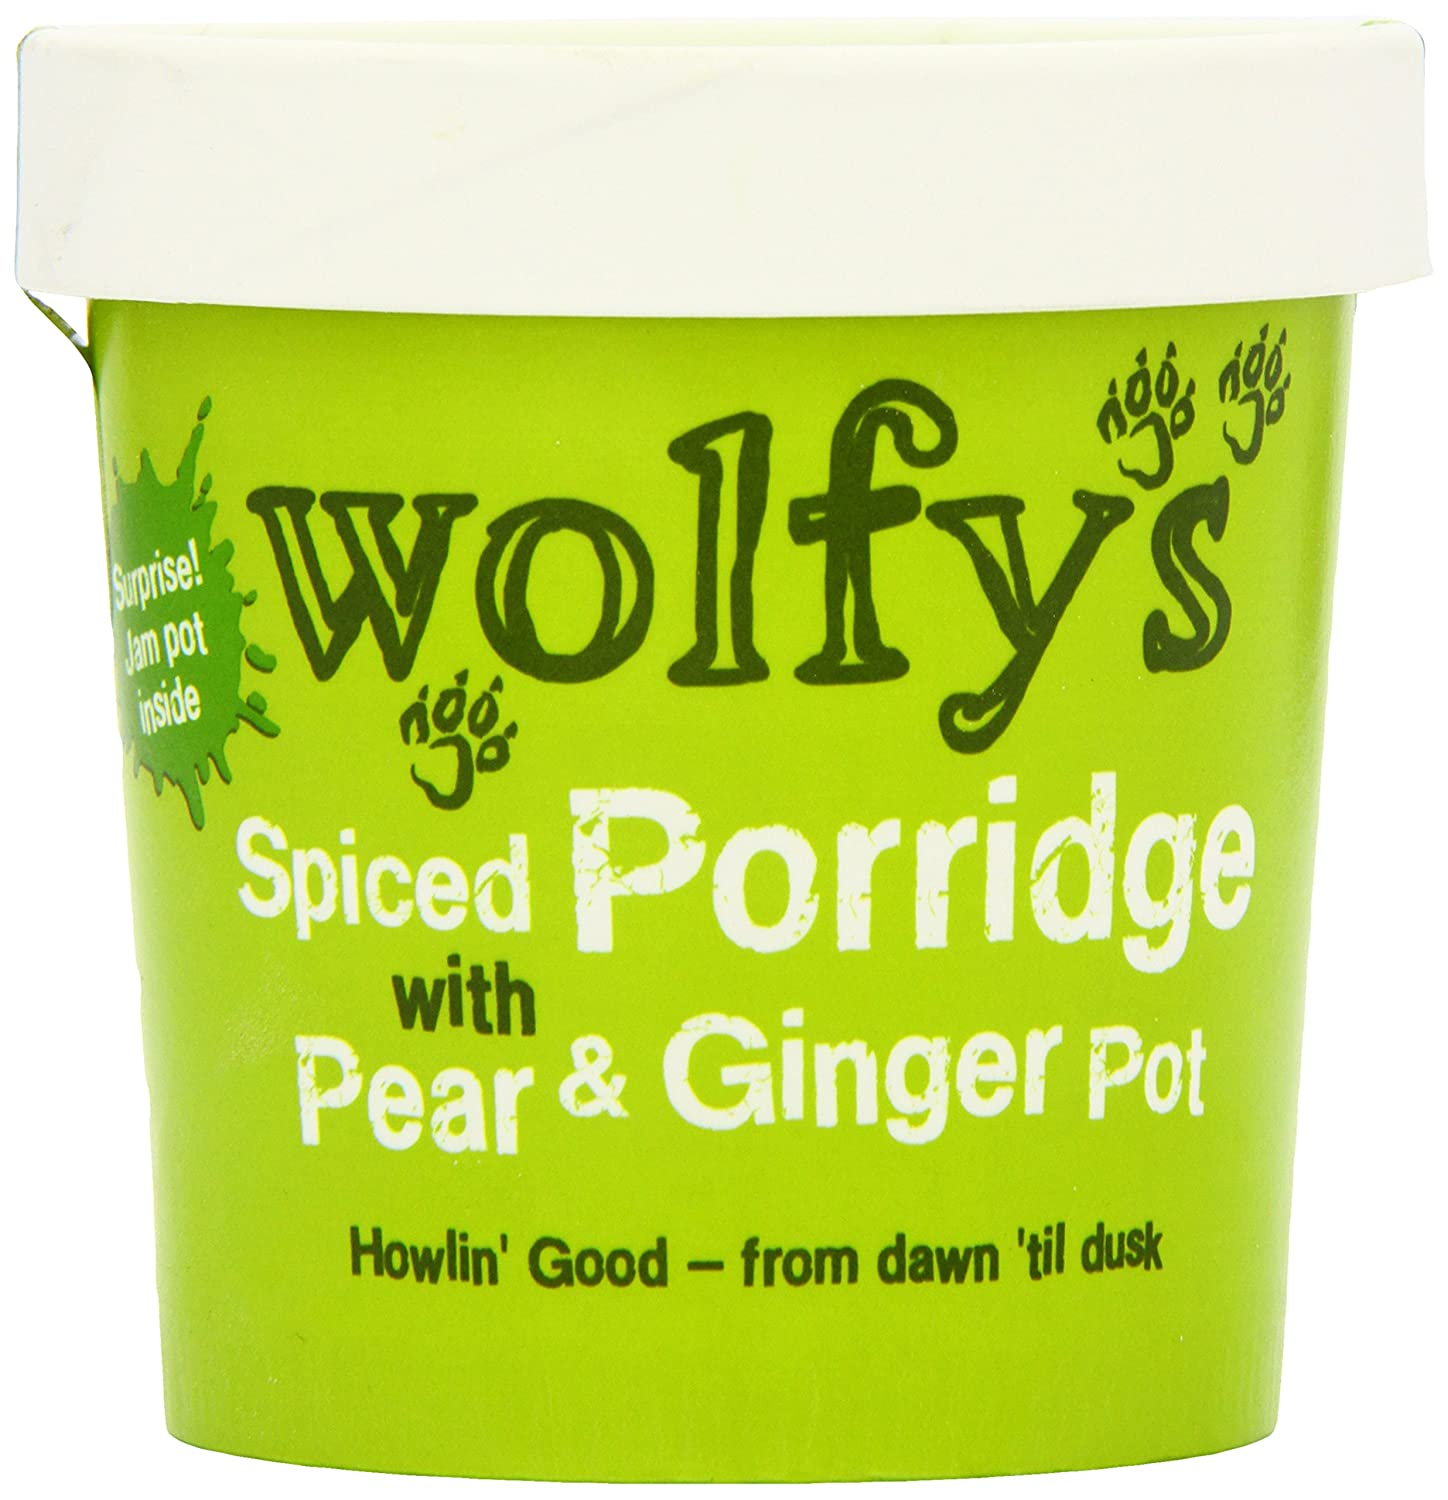 Wolfy's Spiced Porridge with Pear and Ginger Pot 102 g (Pack of 6) Wolfys